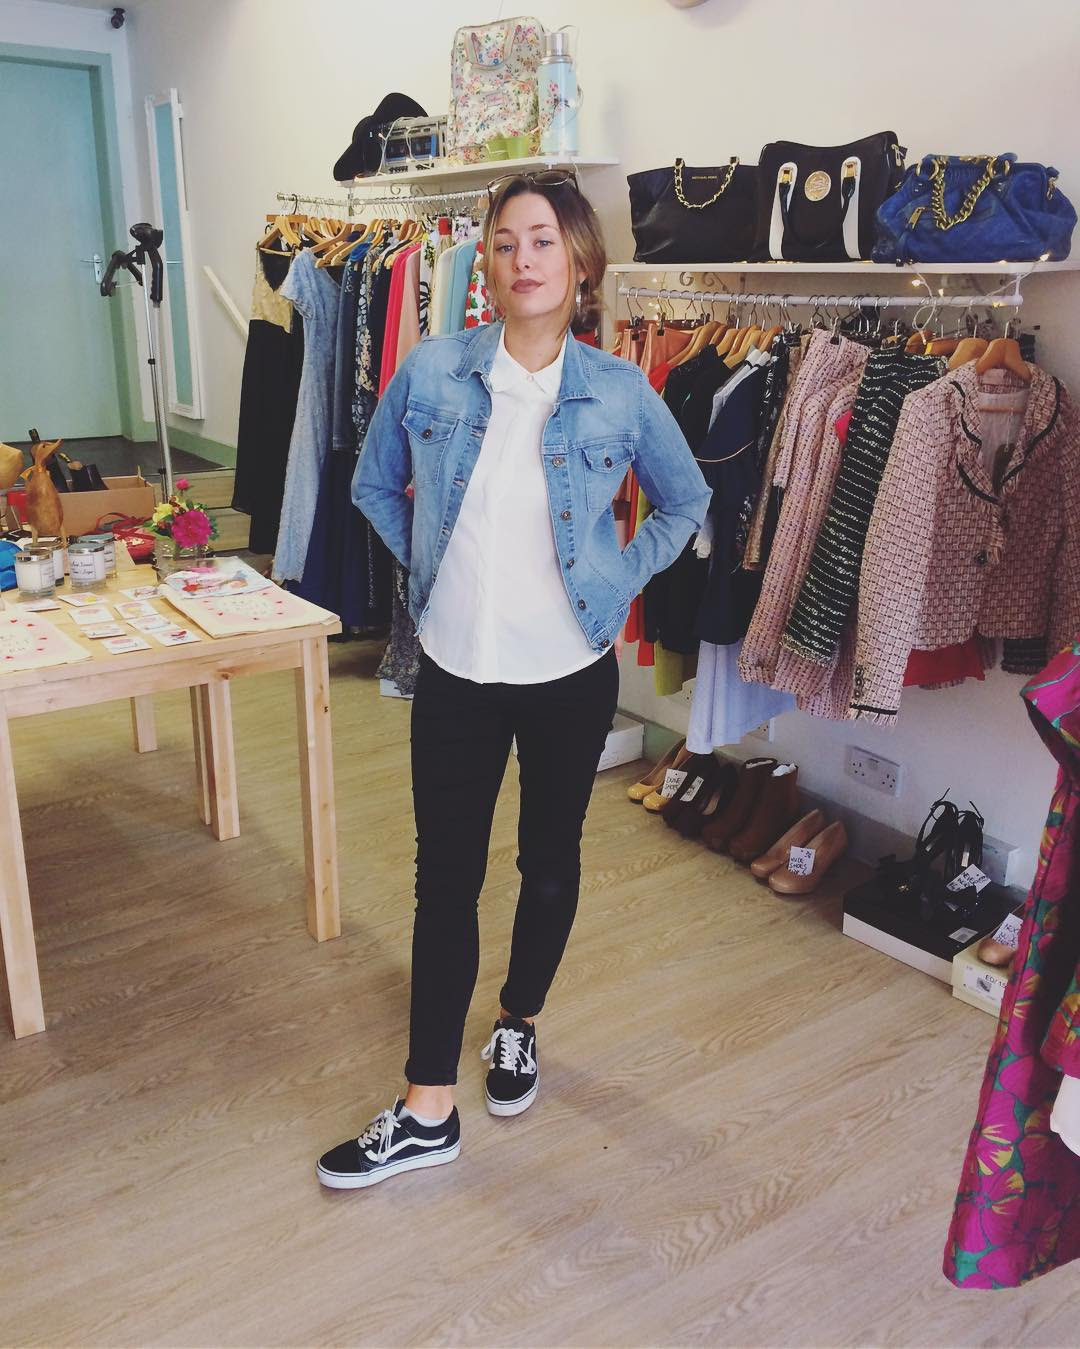 26 Chic Casual Outfit Ideas to Copy Right Now - Styles Weekly